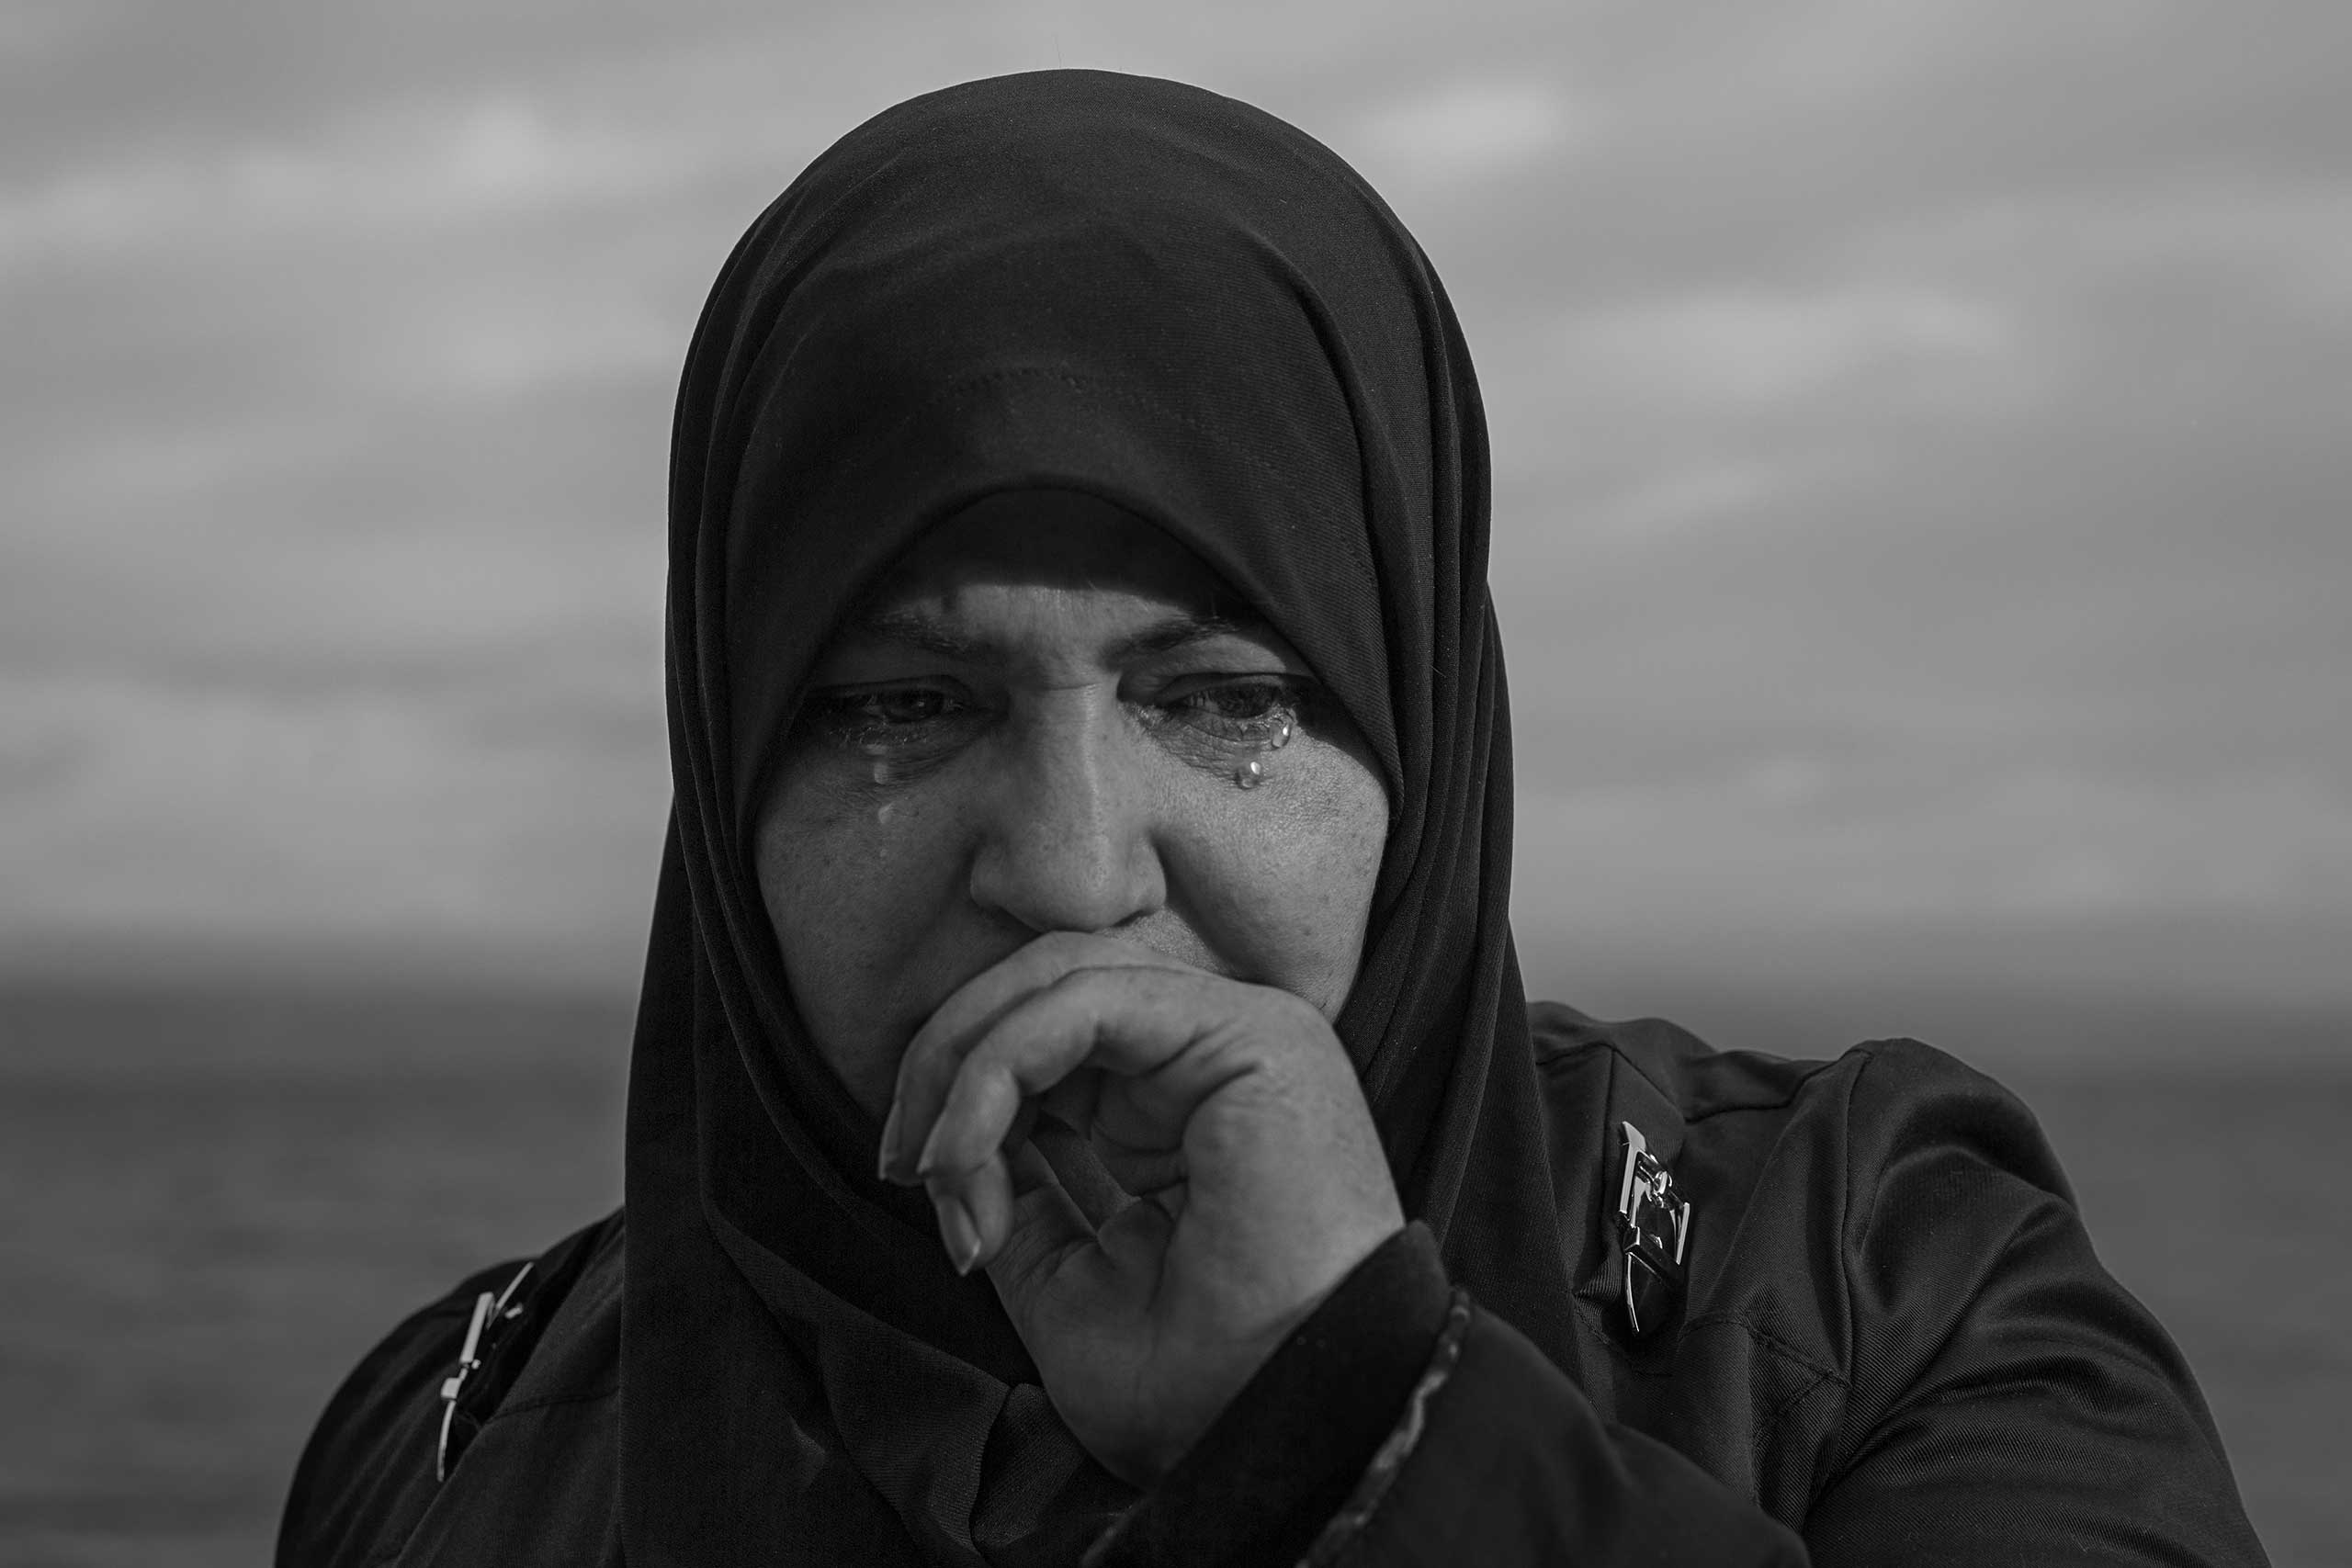 A woman cries after her boat arrives on the island of Lesbos, Greece, Nov. 24, 2015.From  James Nachtwey: The Refugees' Lonely Journey